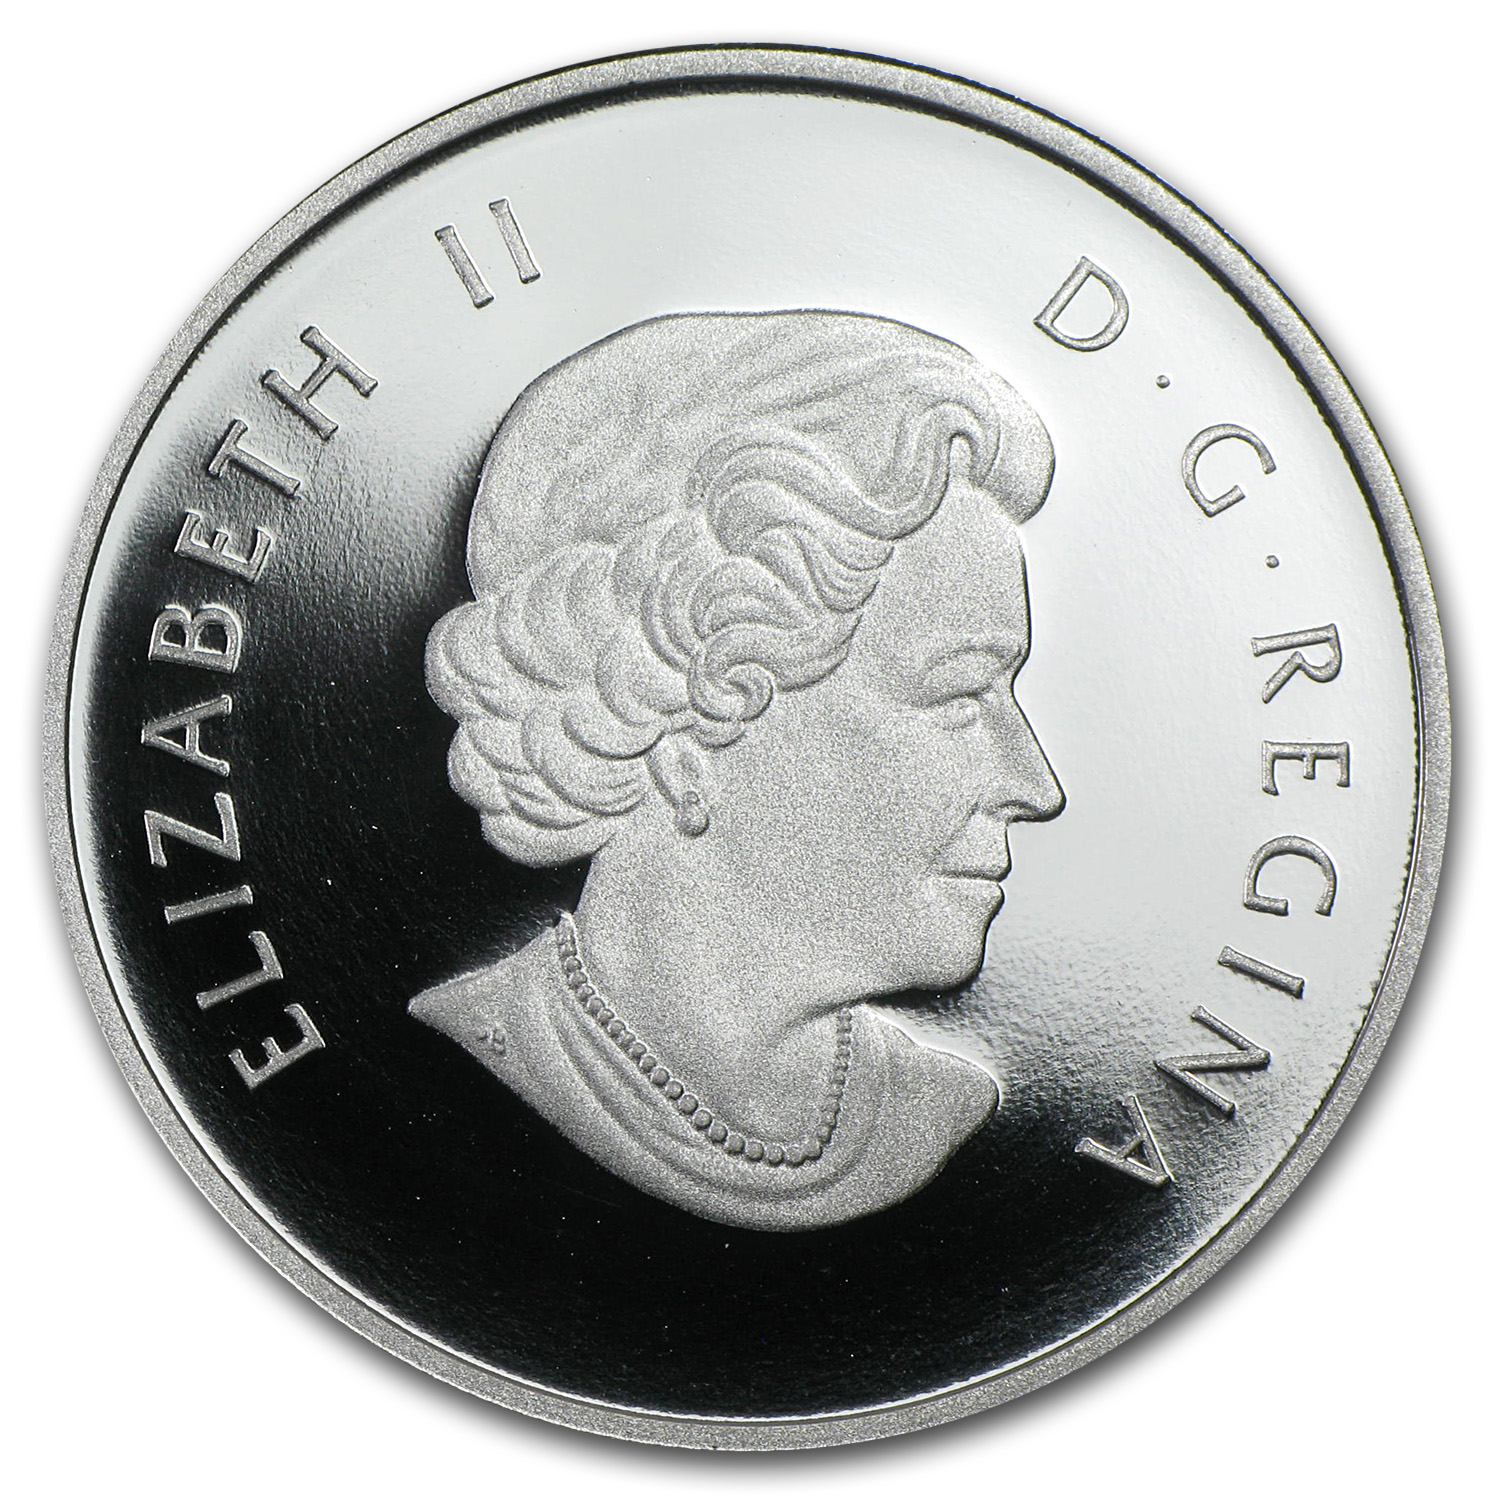 2013 1/2 oz Silver Canadian $10 A Partridge in a Pear Tree